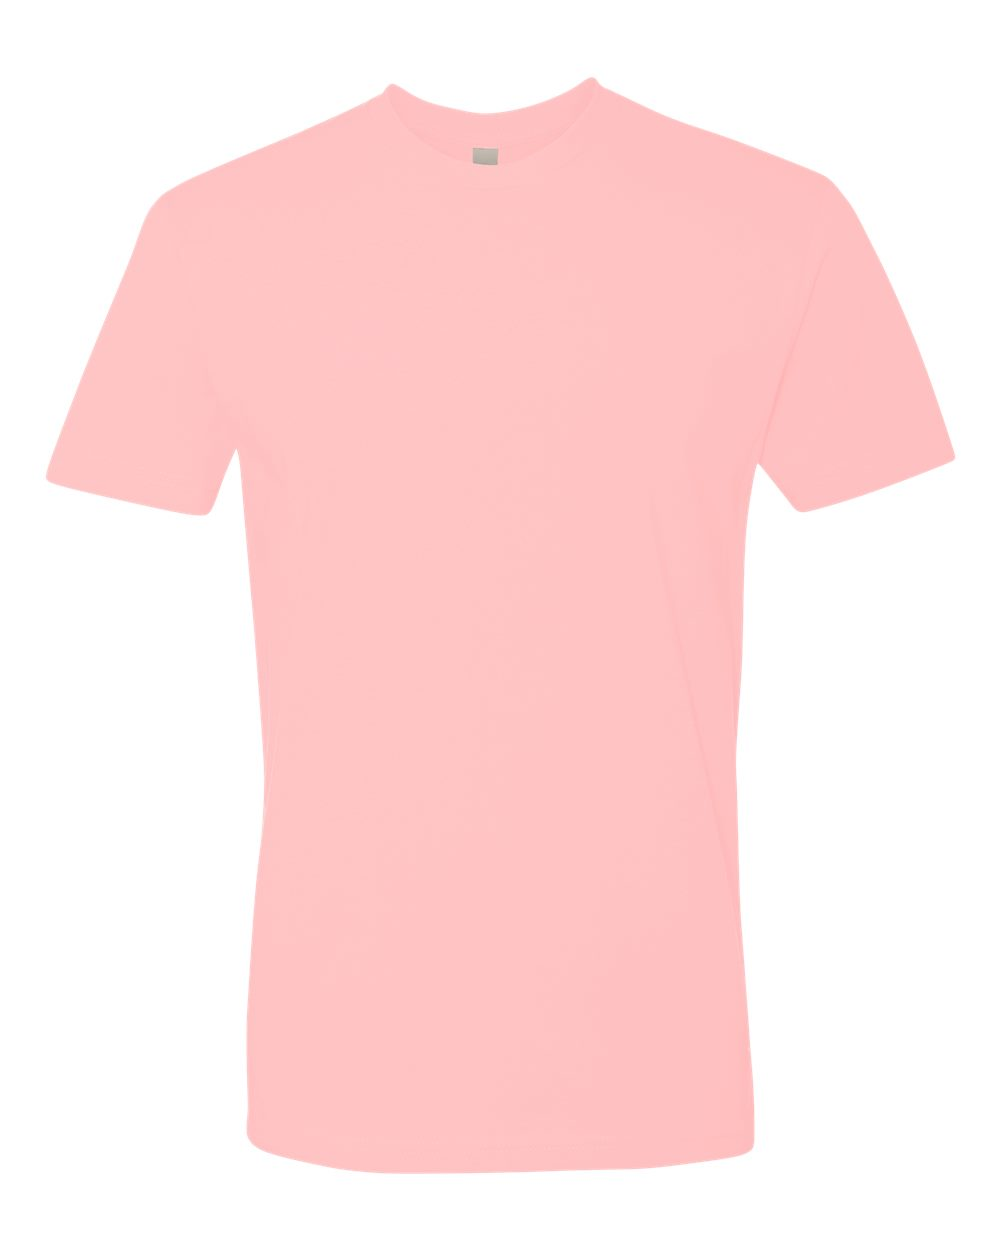 Next_Level_3600_Light_Pink_Front_High.jpg